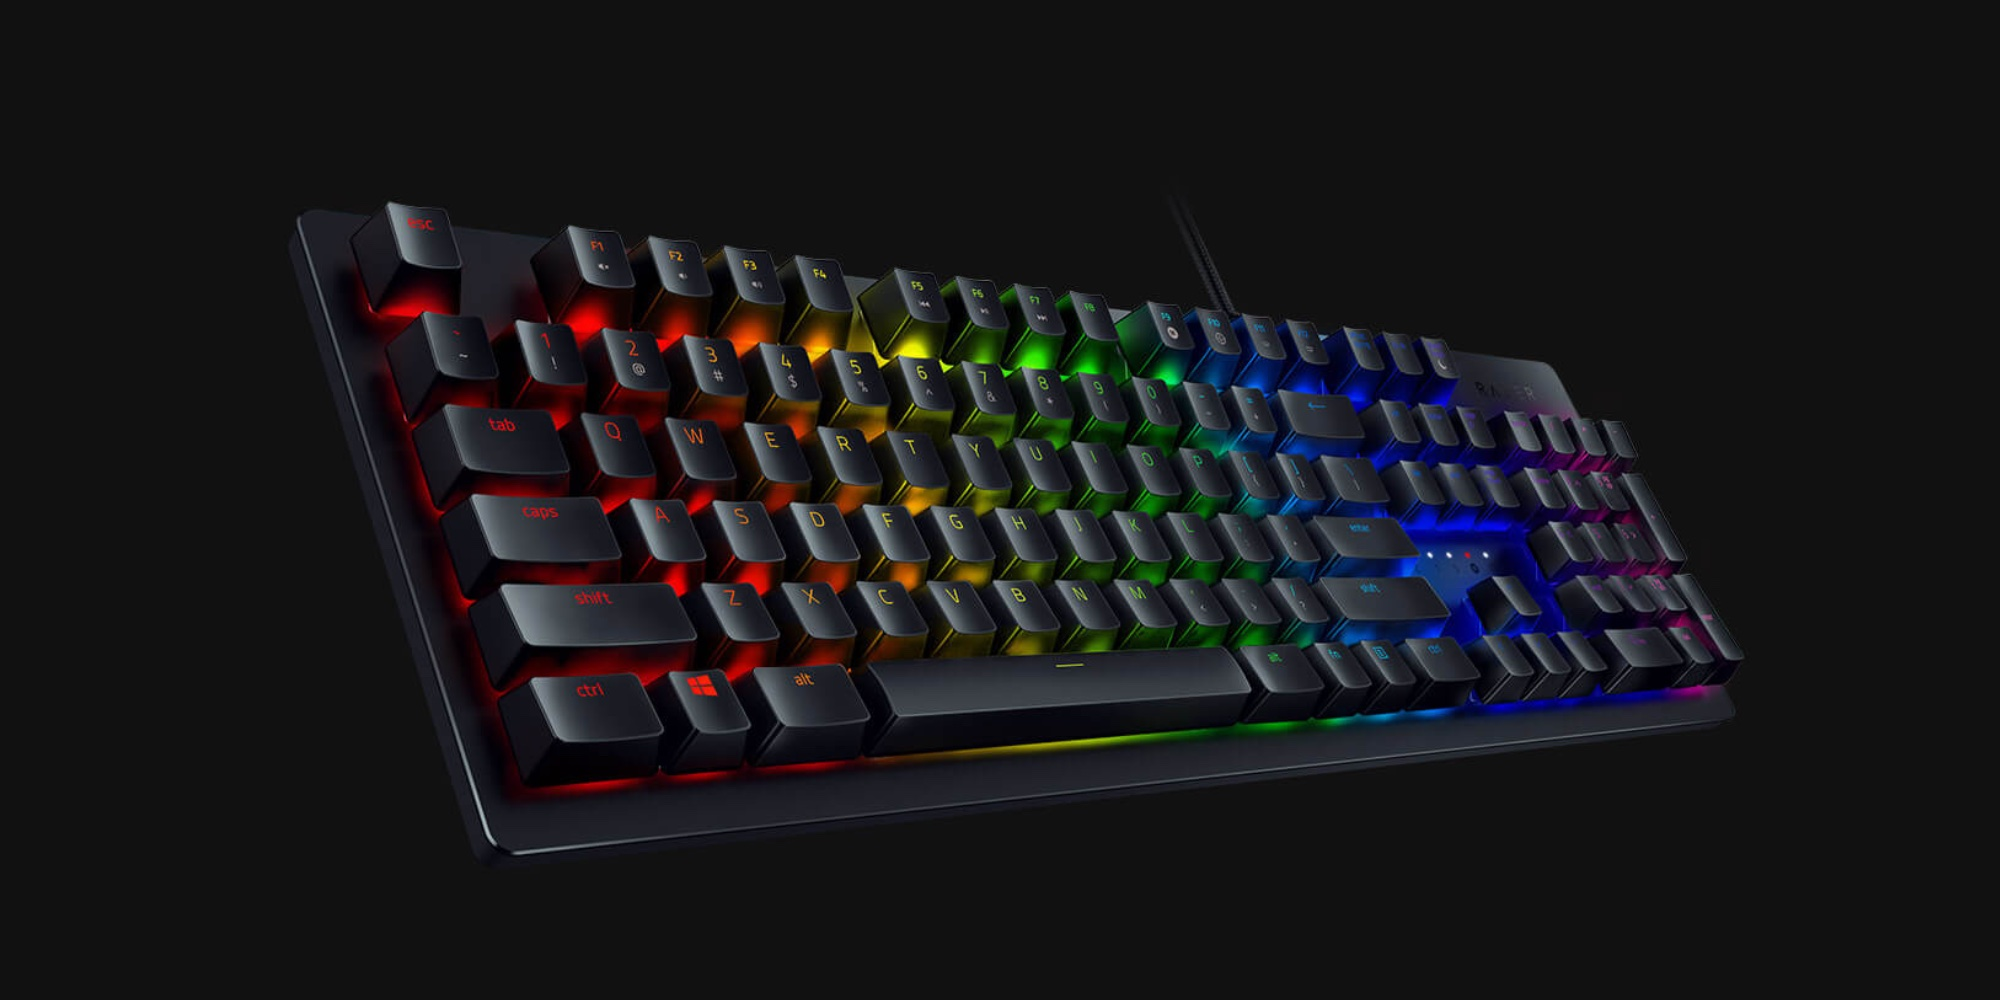 Razer's Huntsman RGB Gaming Keyboard drops to $80 (Reg. $150), more from $45 - 9to5Toys